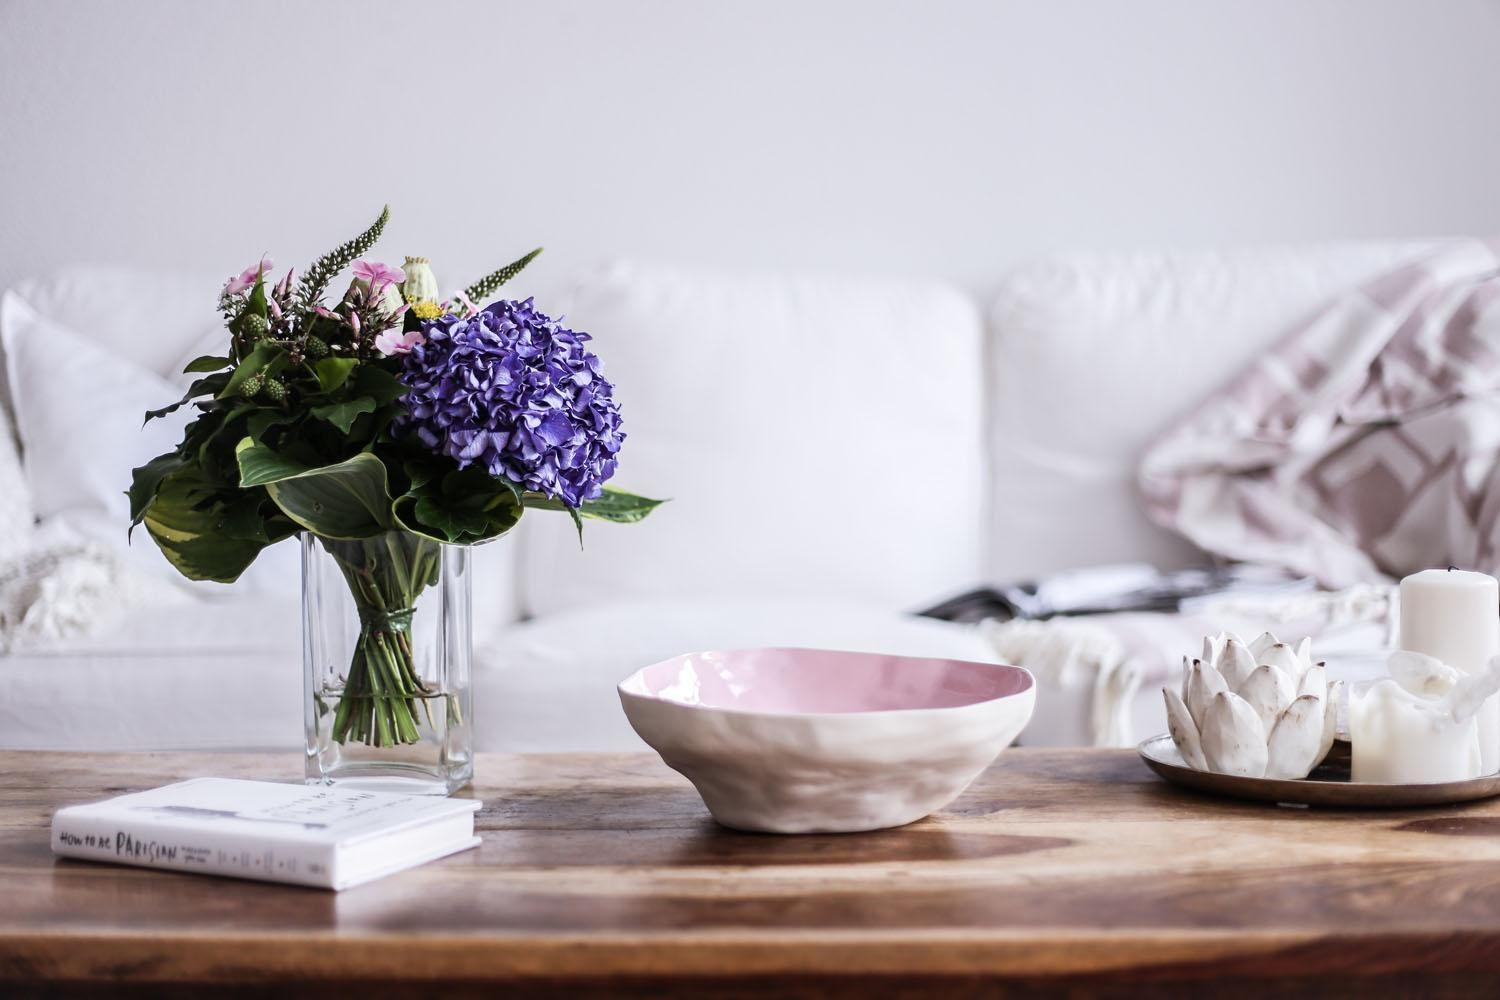 touch of pink.